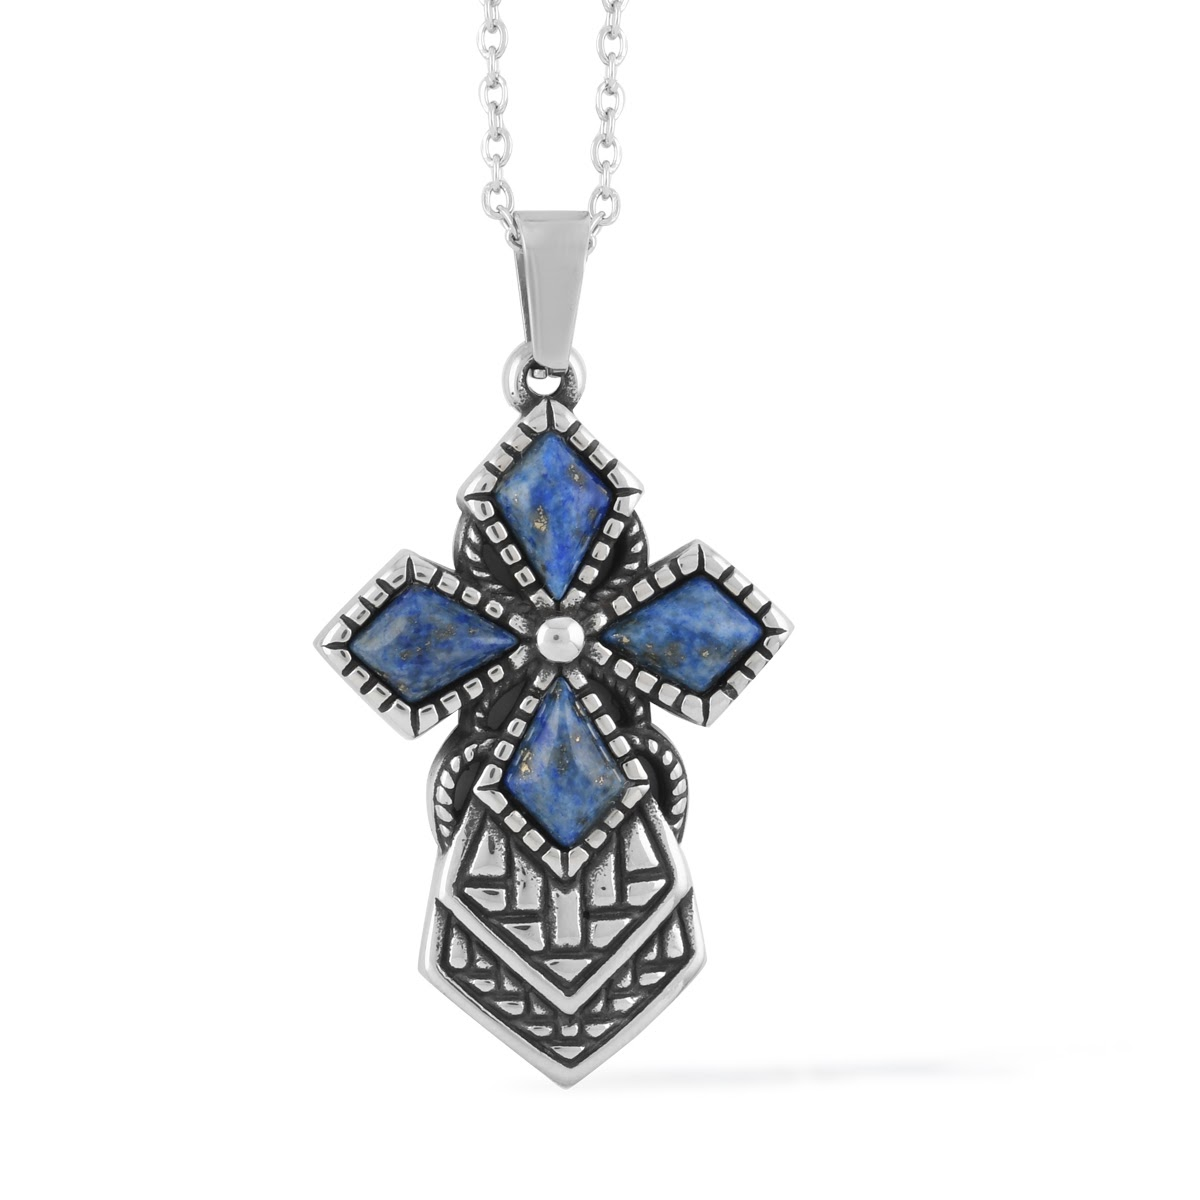 Jewelry Gifts to Surprise Your Mother-in-Law